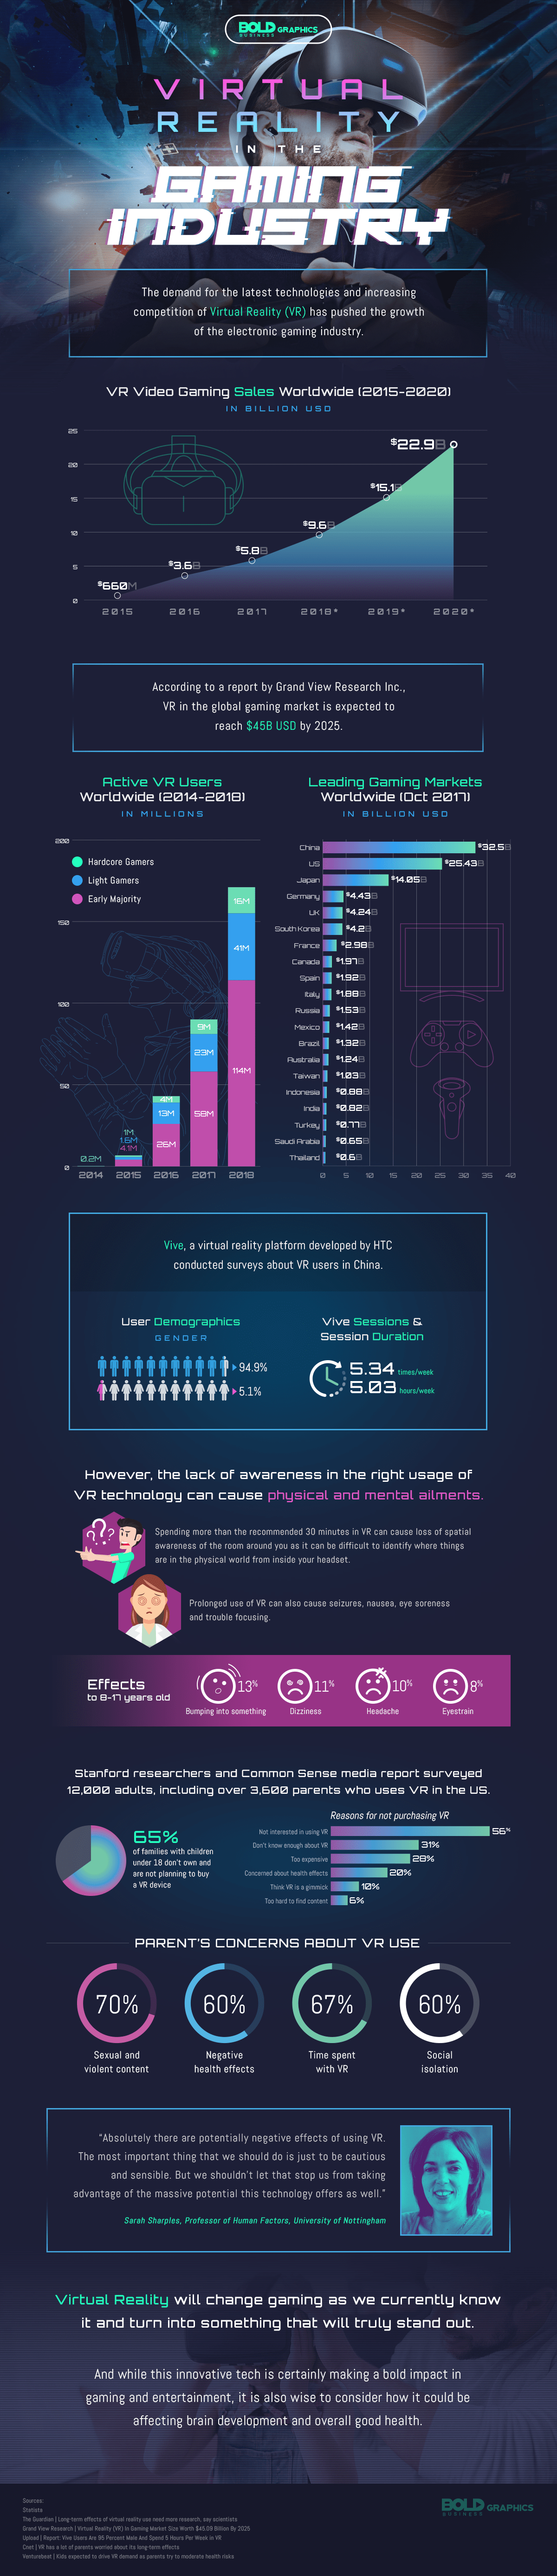 virtual reality in the gaming industry infographic